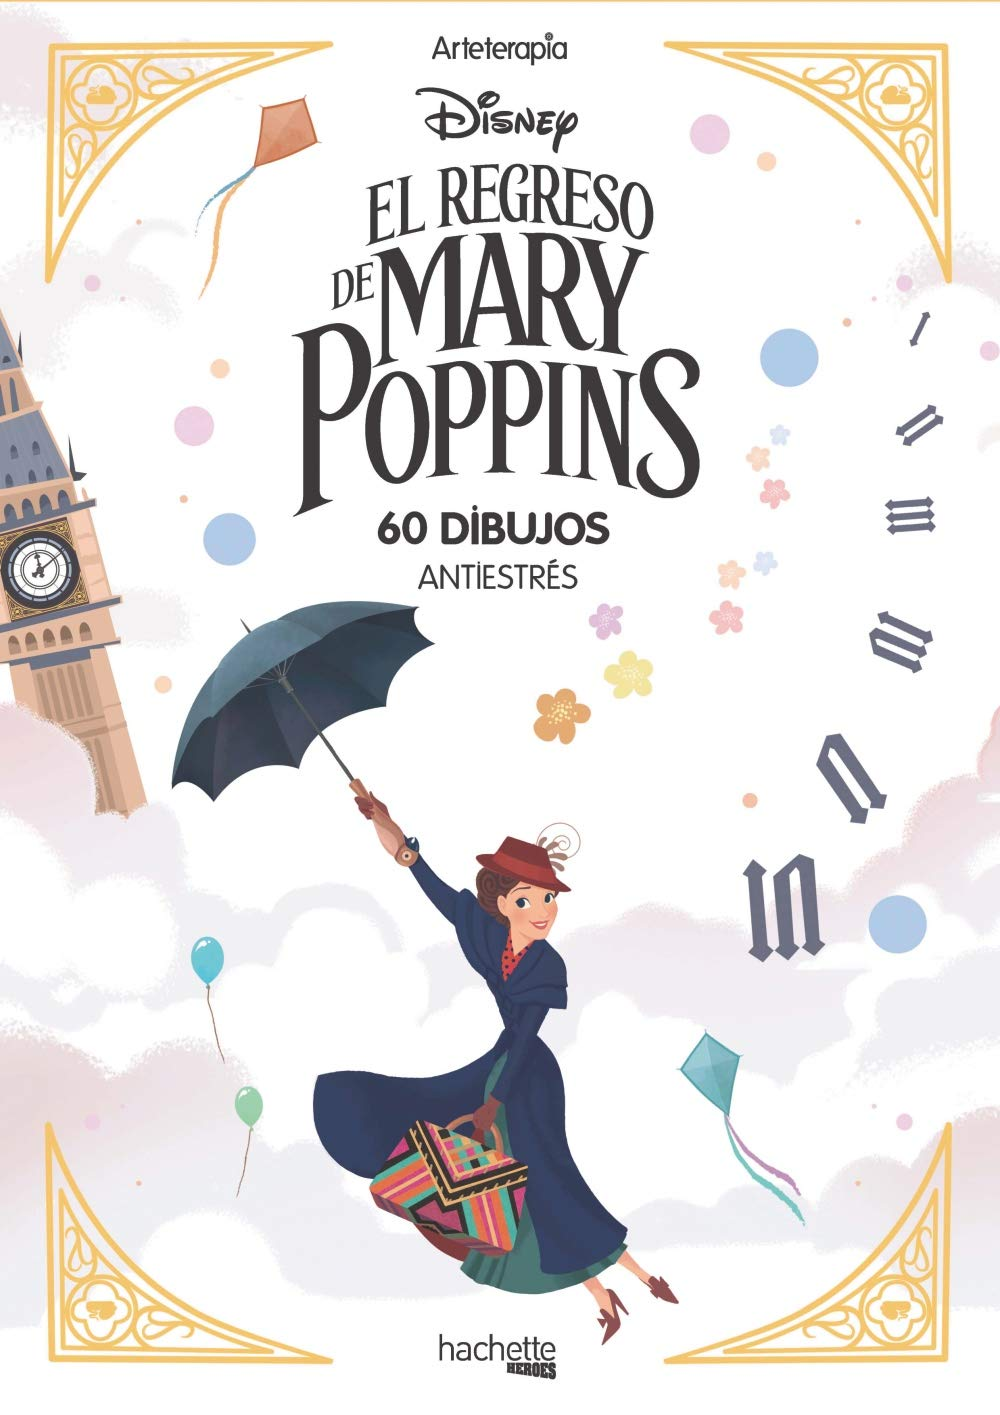 El regreso de Mary Poppins Hachette Heroes - Disney - Arteterapia ...